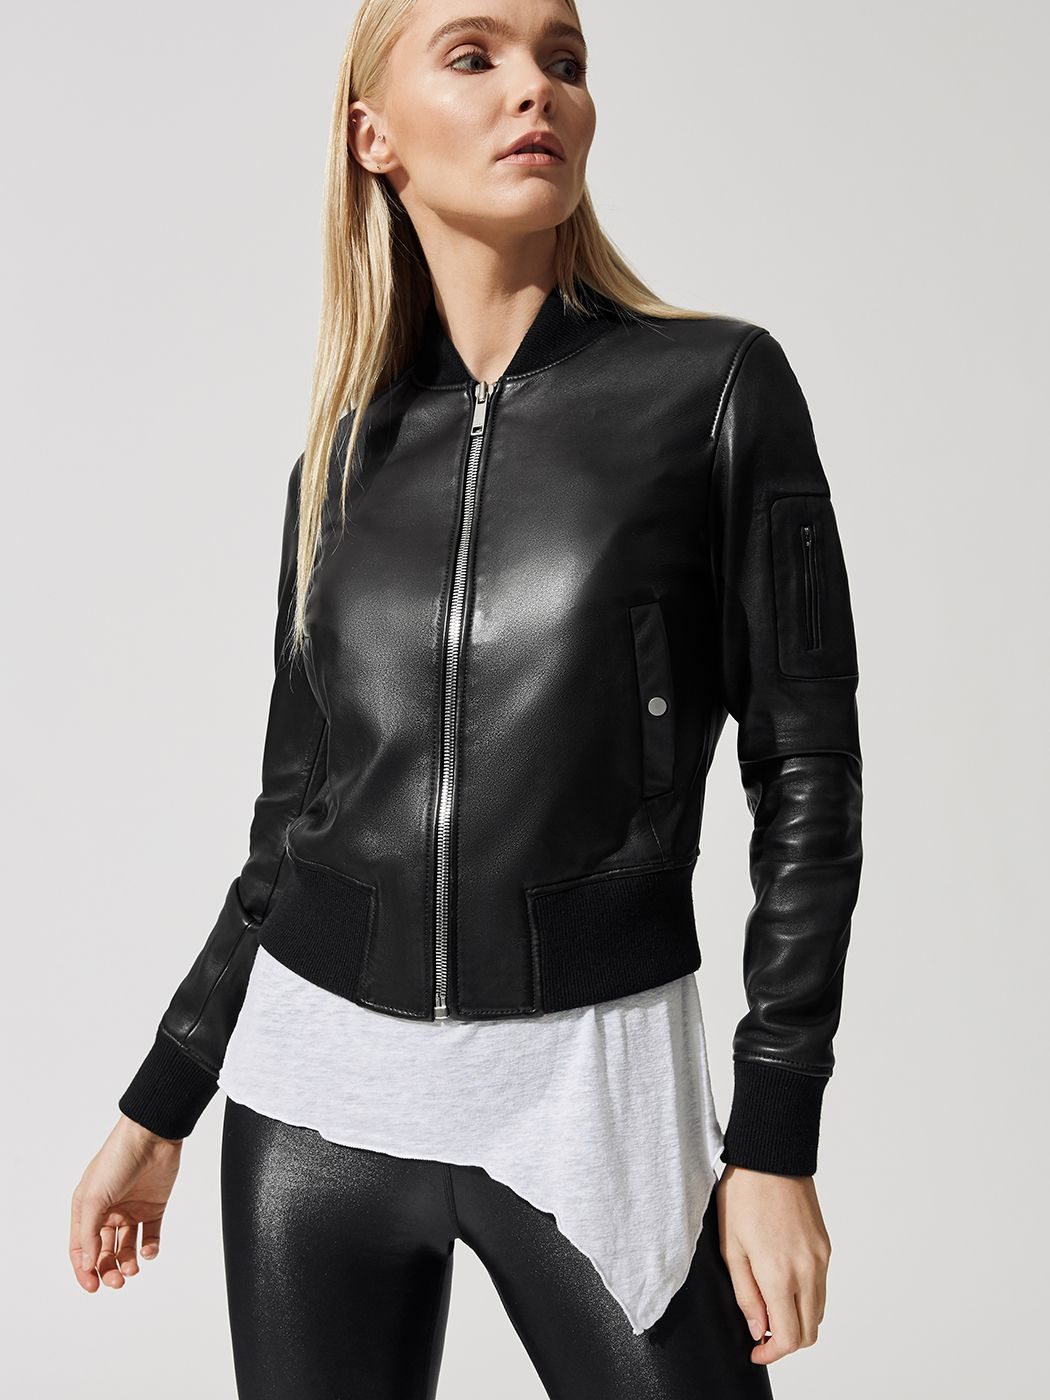 Min Bomber Jacket In Black By Lth Jkt From Carbon38 Leather Jacket Girl Jackets Bomber Jacket [ 1400 x 1050 Pixel ]